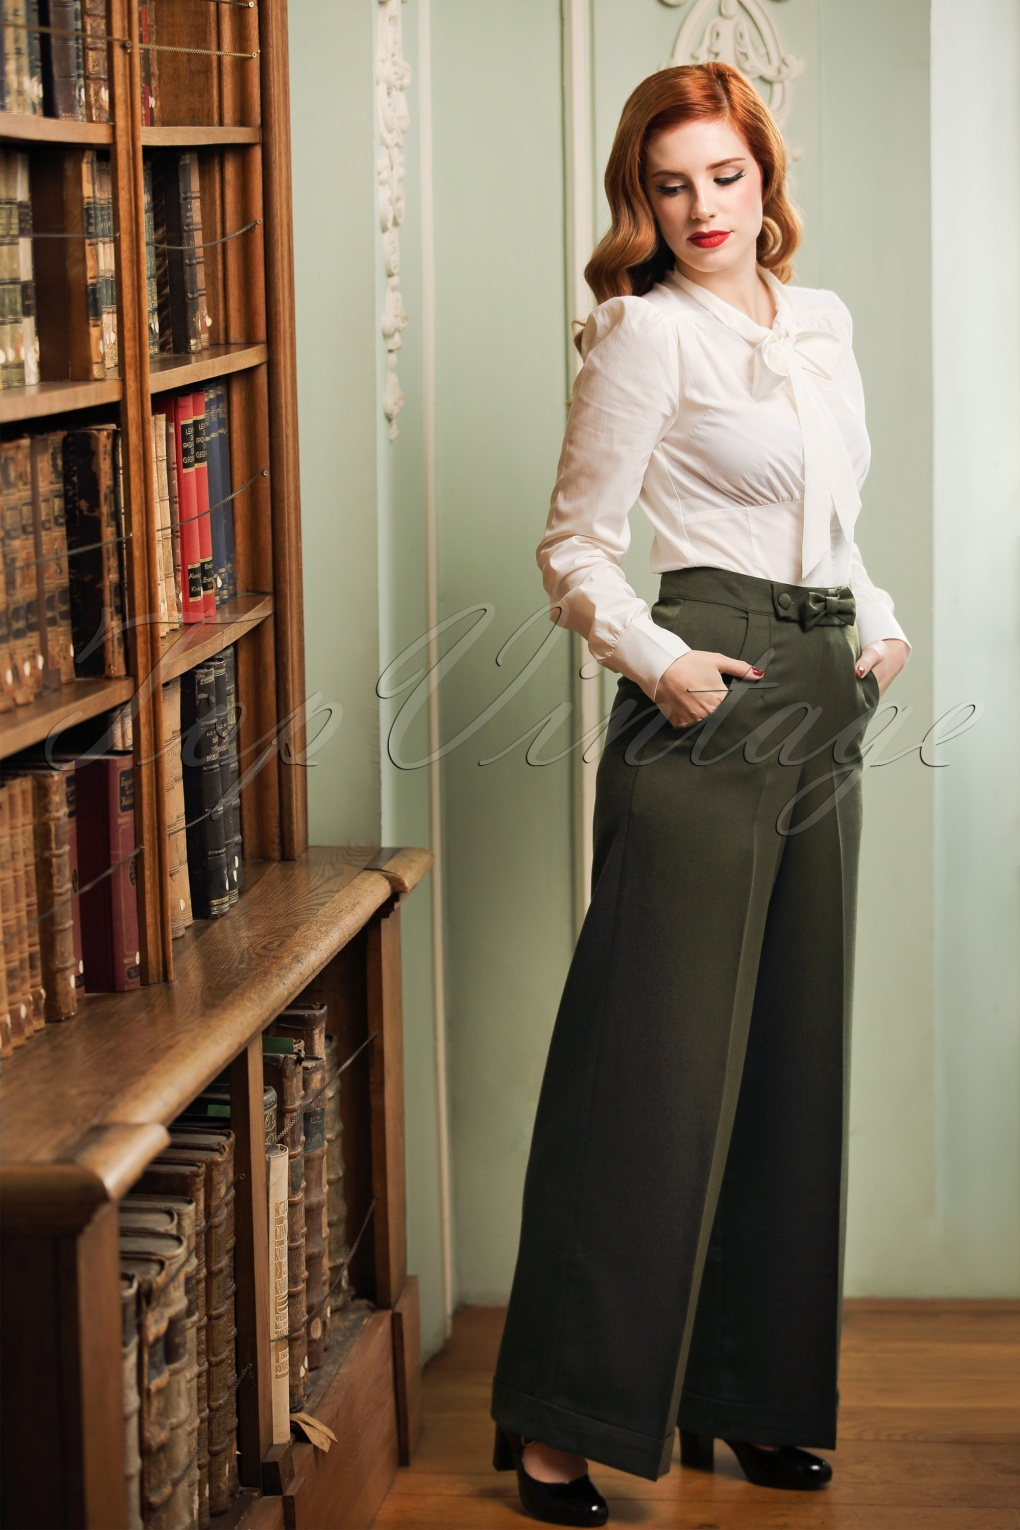 1940s Swing Pants & Sailor Trousers- Wide Leg, High Waist 40s Mindy Hide Away Trousers in Olive Green £33.81 AT vintagedancer.com